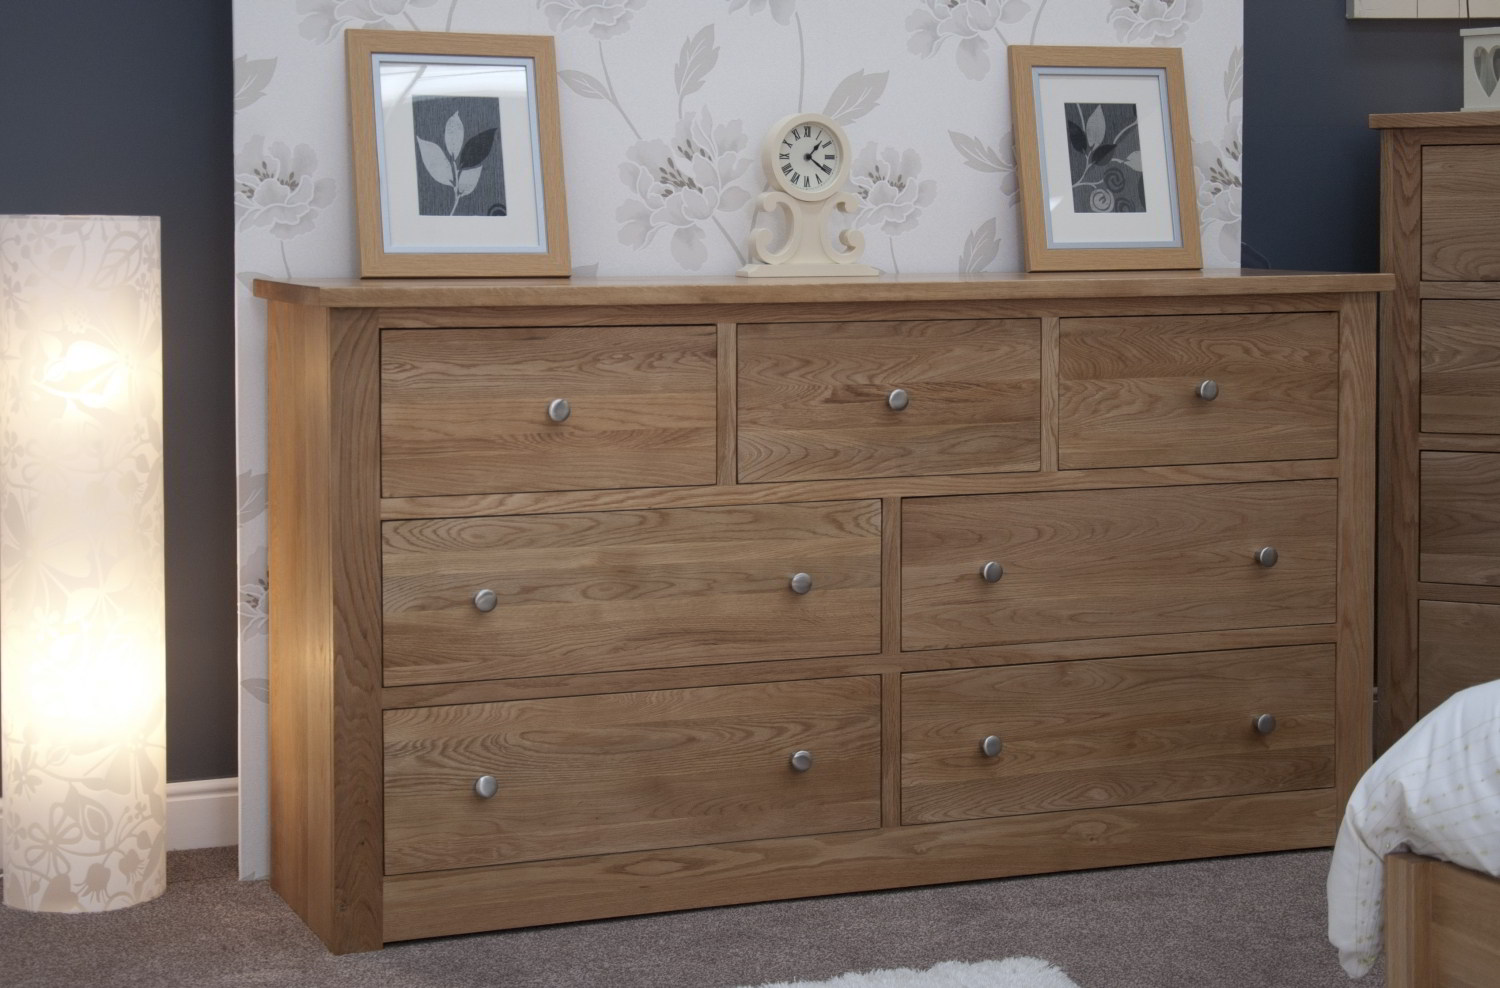 #634C3B Kingston Solid Modern Oak Bedroom Furniture Deep Wide Chest Of Drawers with 1500x988 px of Most Effective Modern Bedroom Chest Of Drawers 9881500 wallpaper @ avoidforclosure.info